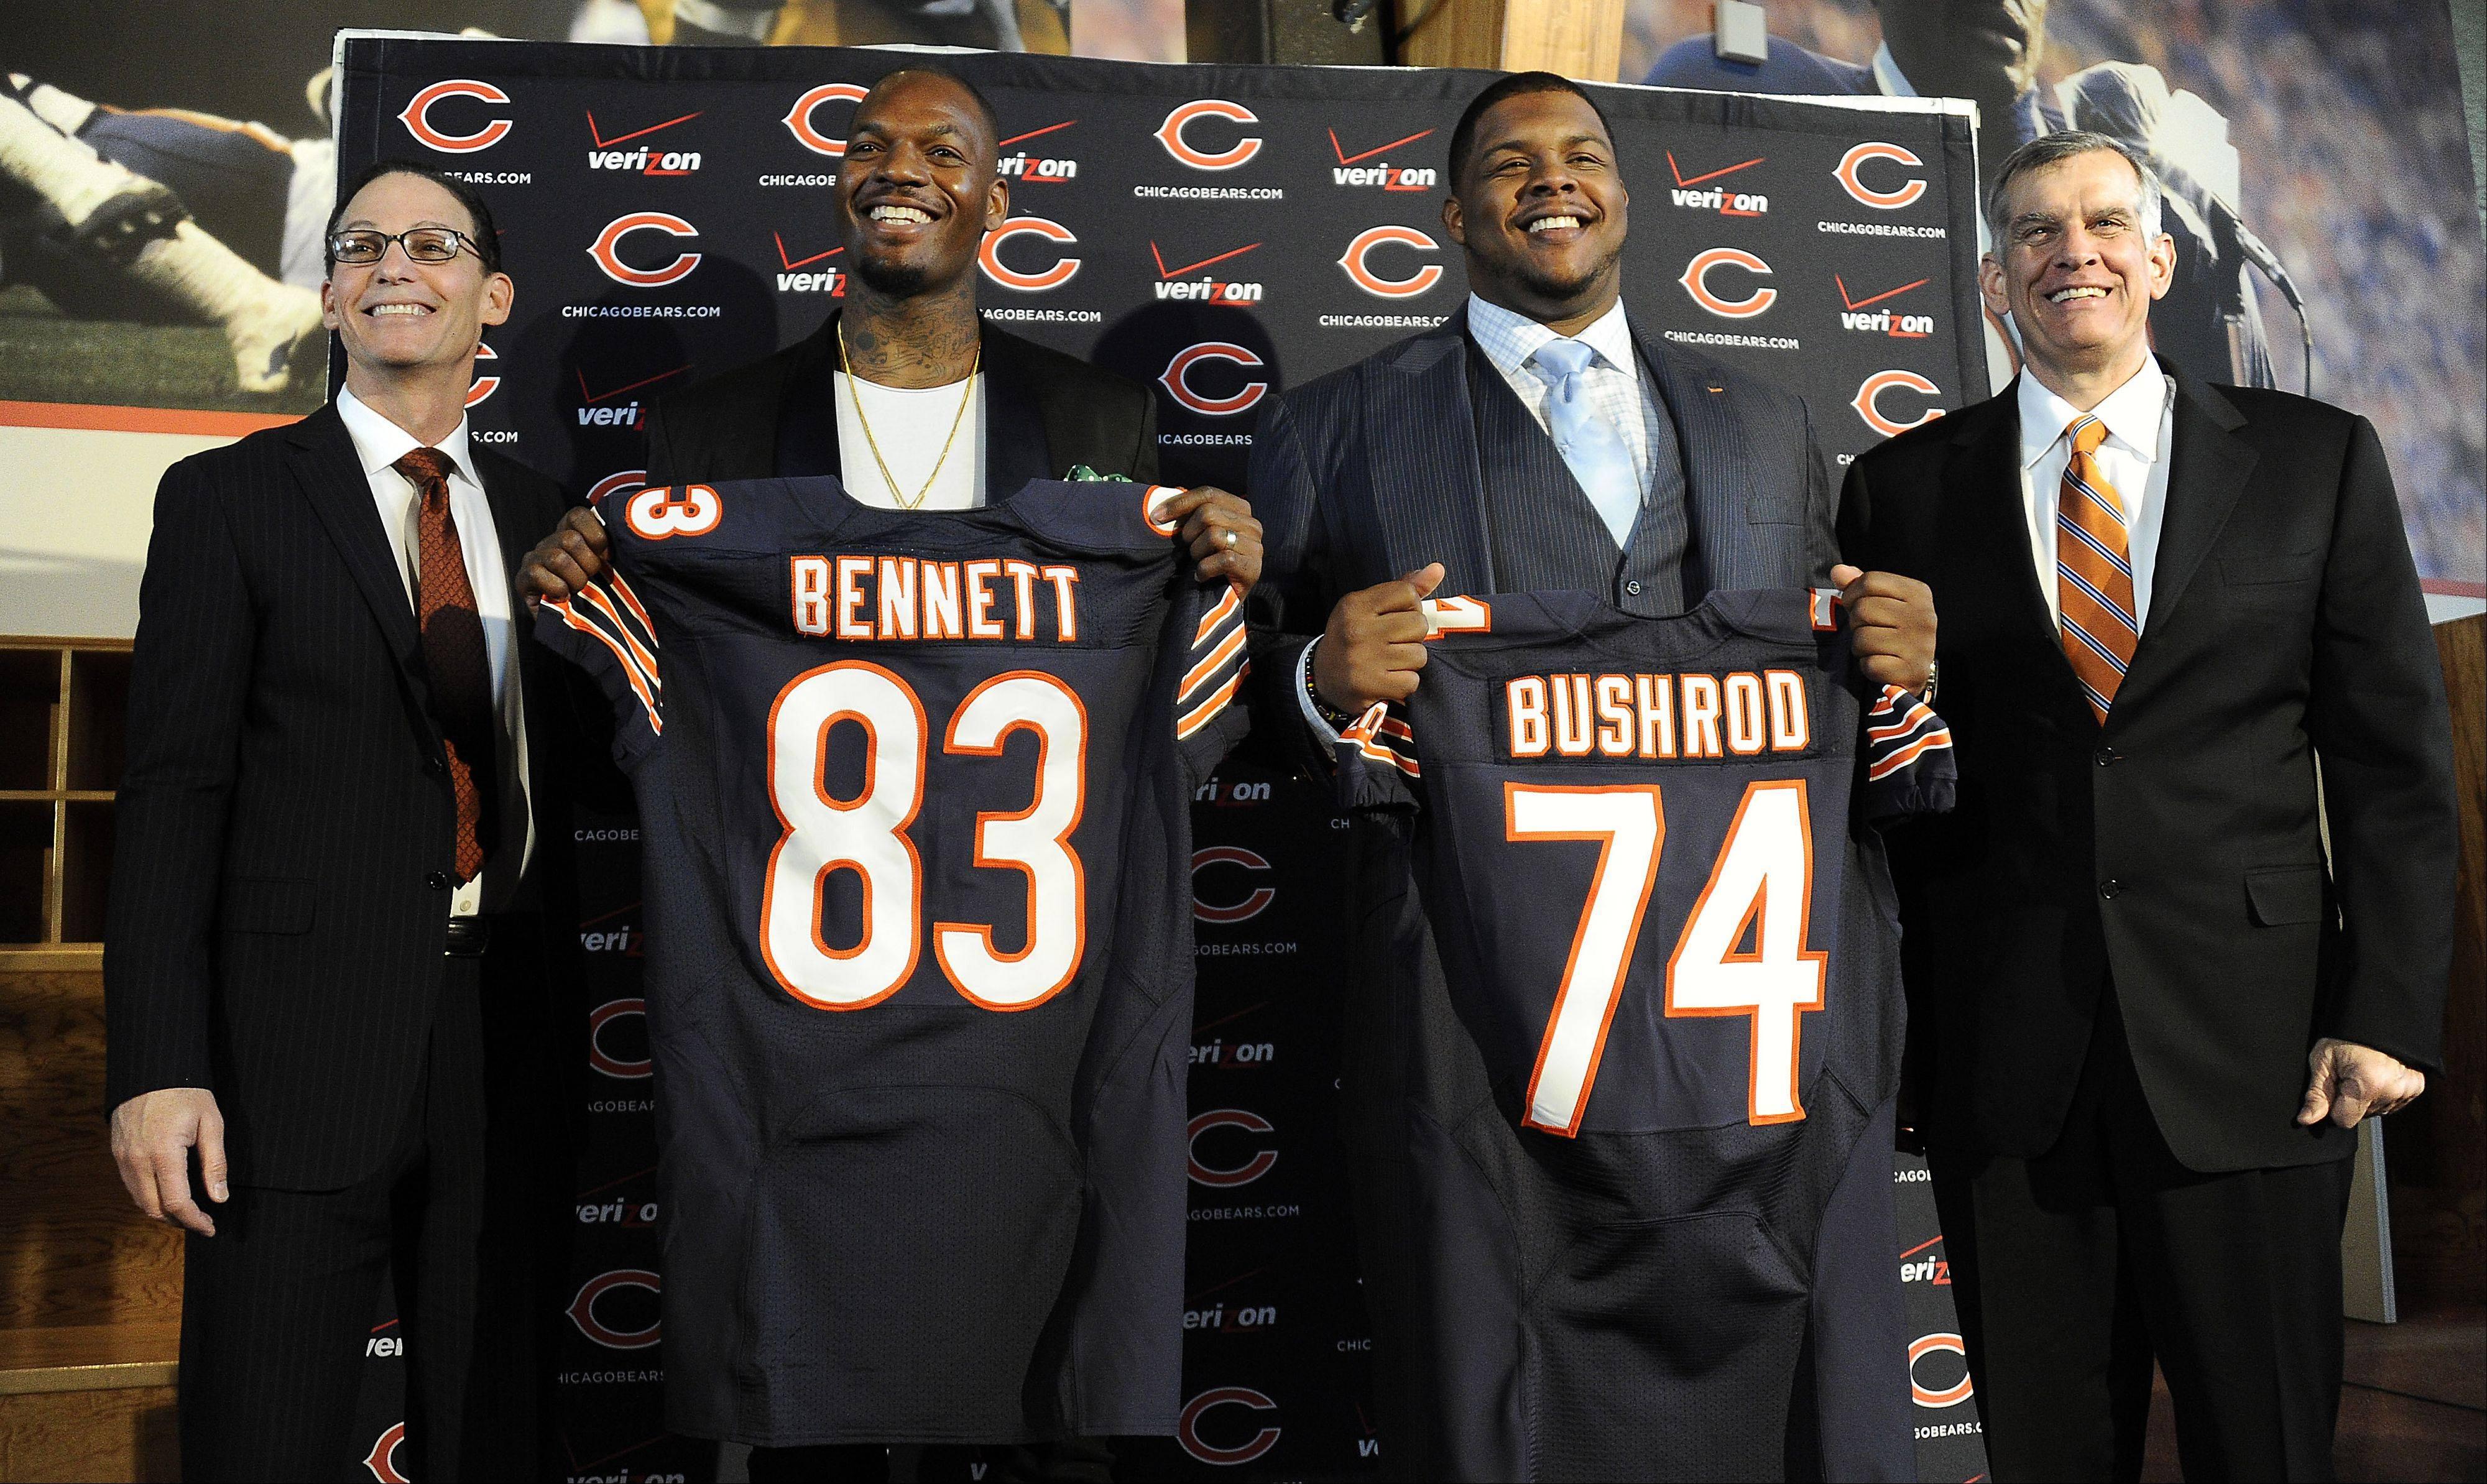 Bears coach Marc Trestman, far left, and general manager Phil Emery introduce tight end Martellus Bennett and left tackle Jermon Bushrod to the Chicago media.